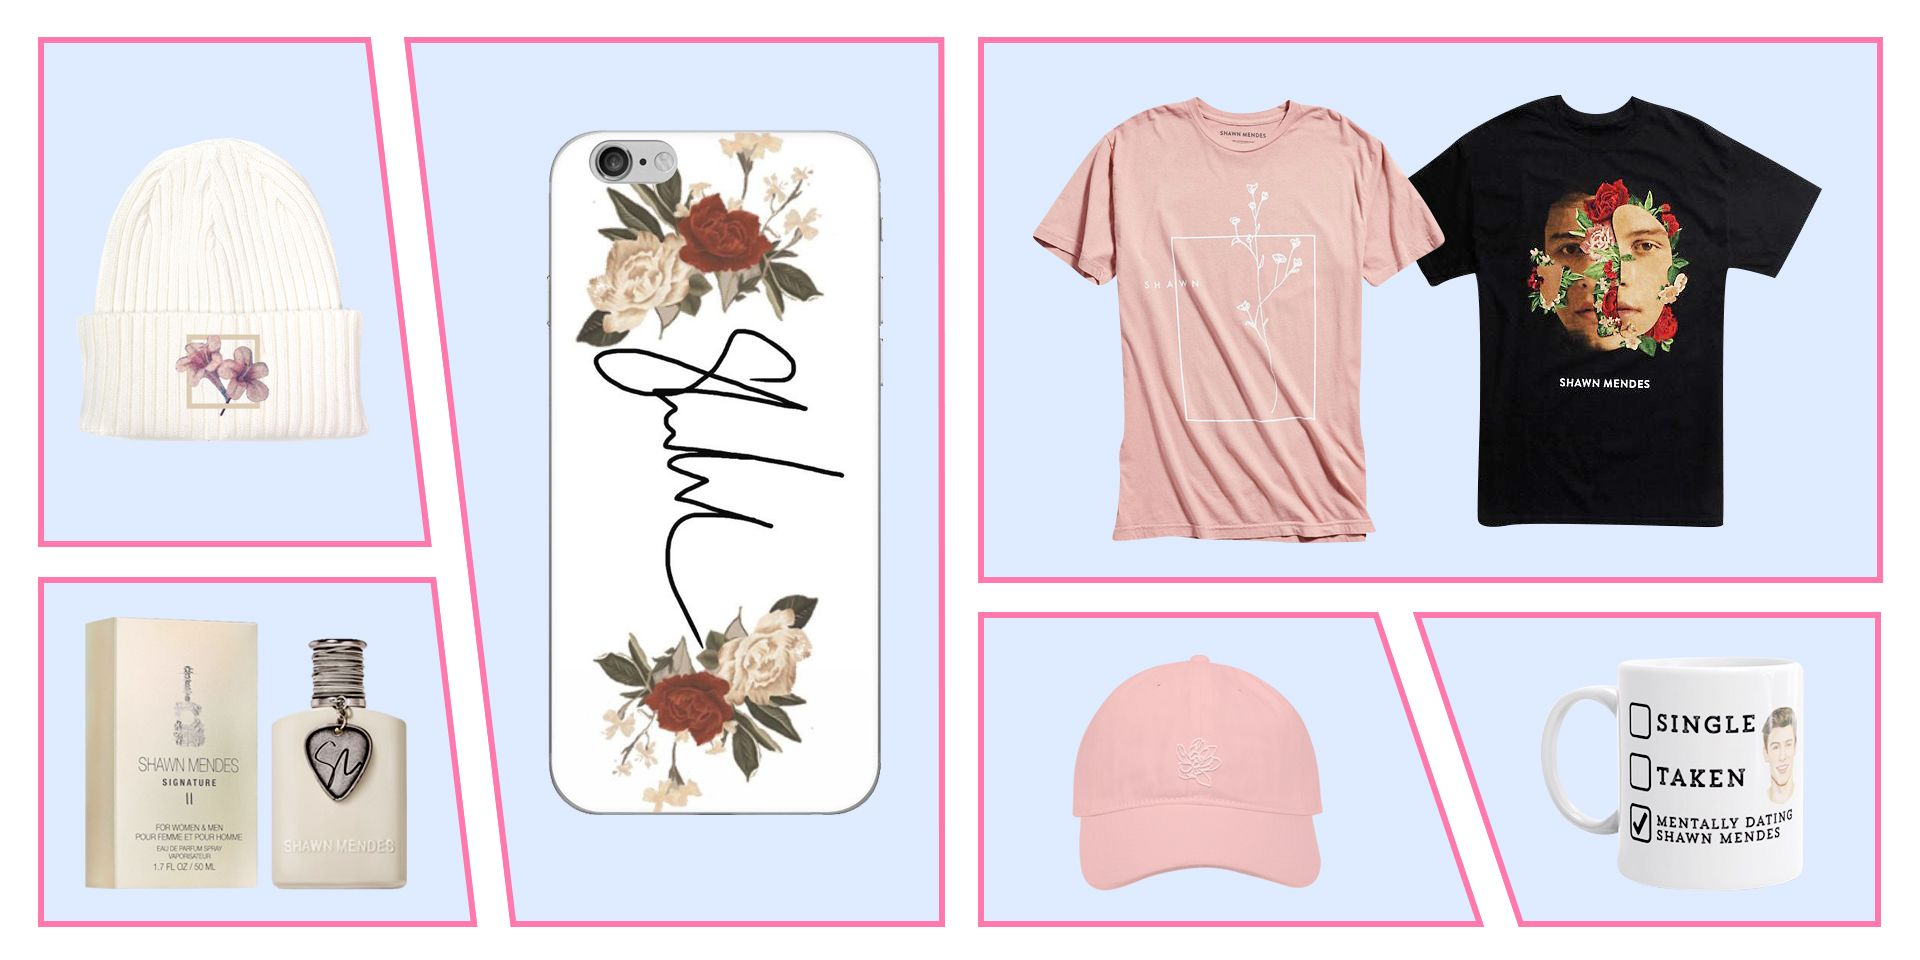 8a4a1f30c Shawn Mendes Merchandise - 16 Best Gifts for Shawn Mendes Fans